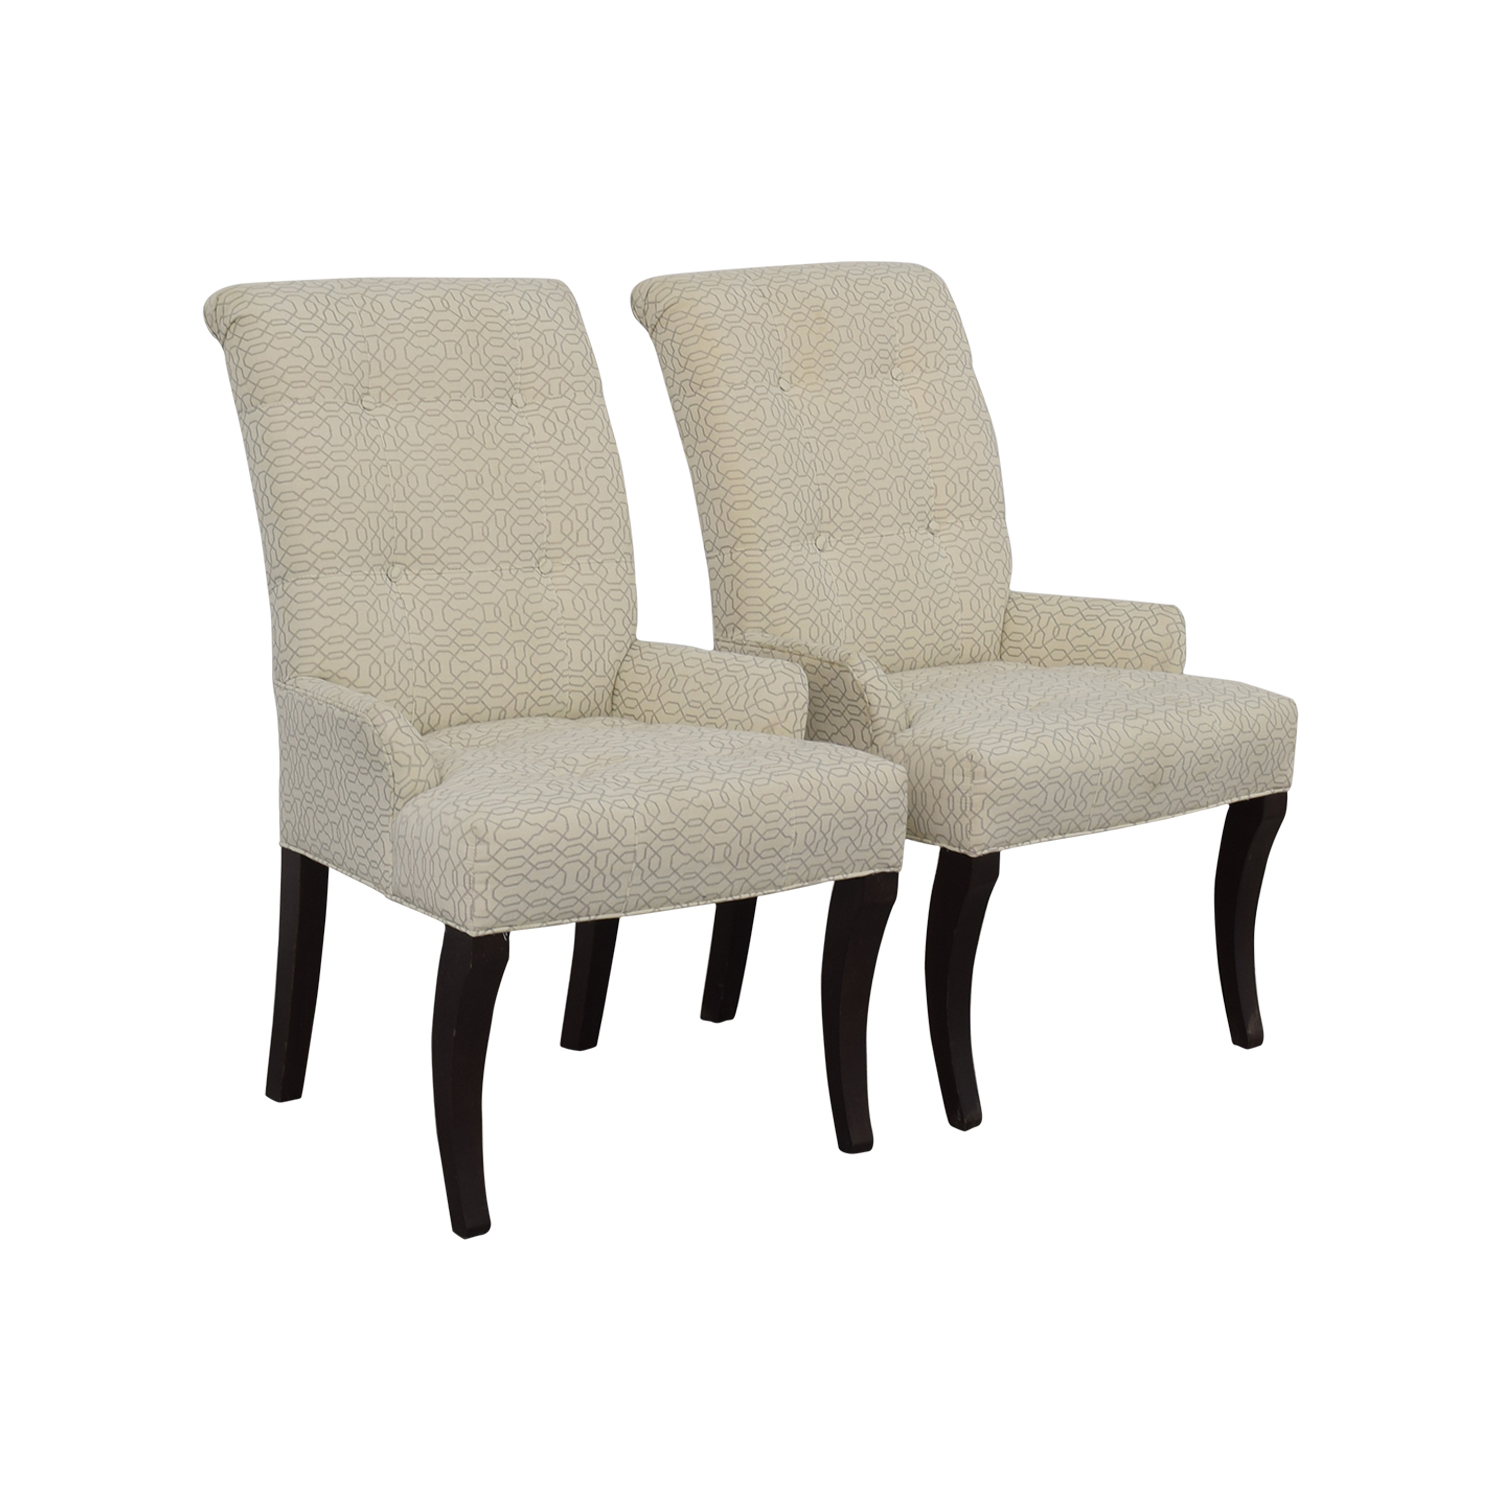 ethan allen recliners chairs wheelchair for cats 75 off jaqueline white accent